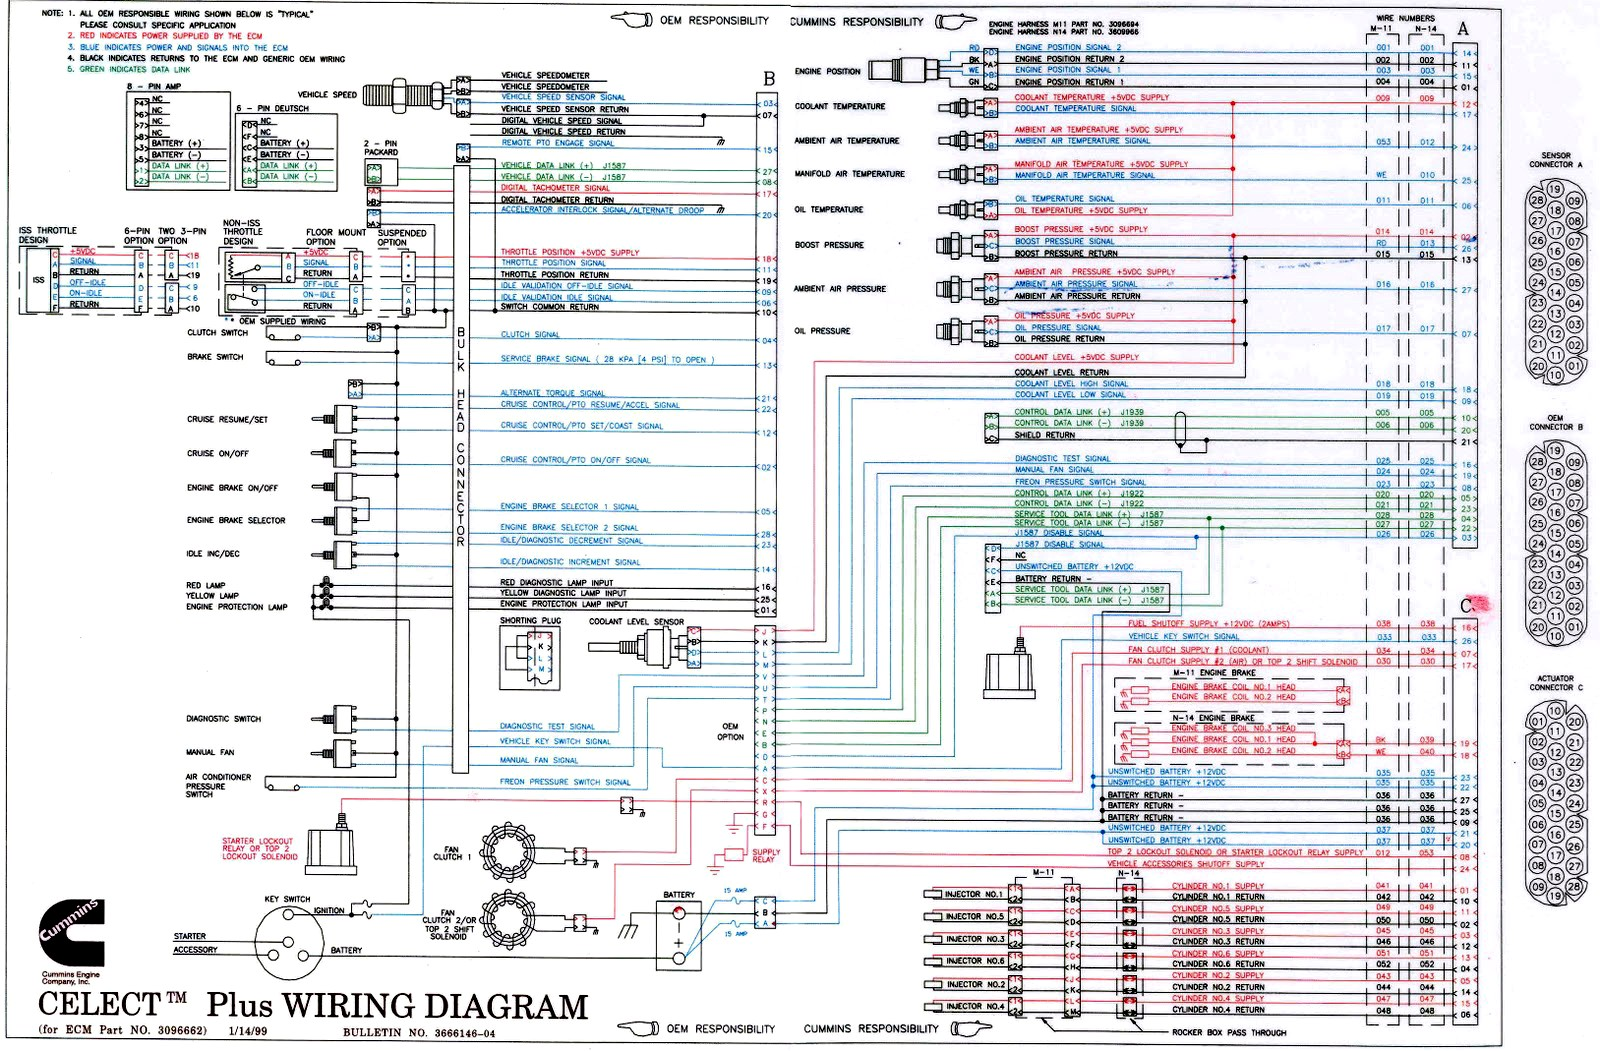 N14 Celect Cummins Jake Brake Wiring Diagram 2012 Dodge Diesel Engine Wire Diagram Cummins ECM Wiring Diagram Cummins 8 3 ISC ECM Wiring Diagram Cummins N14 Plus Engine Diagram Cummins Ism Wiring Diagram